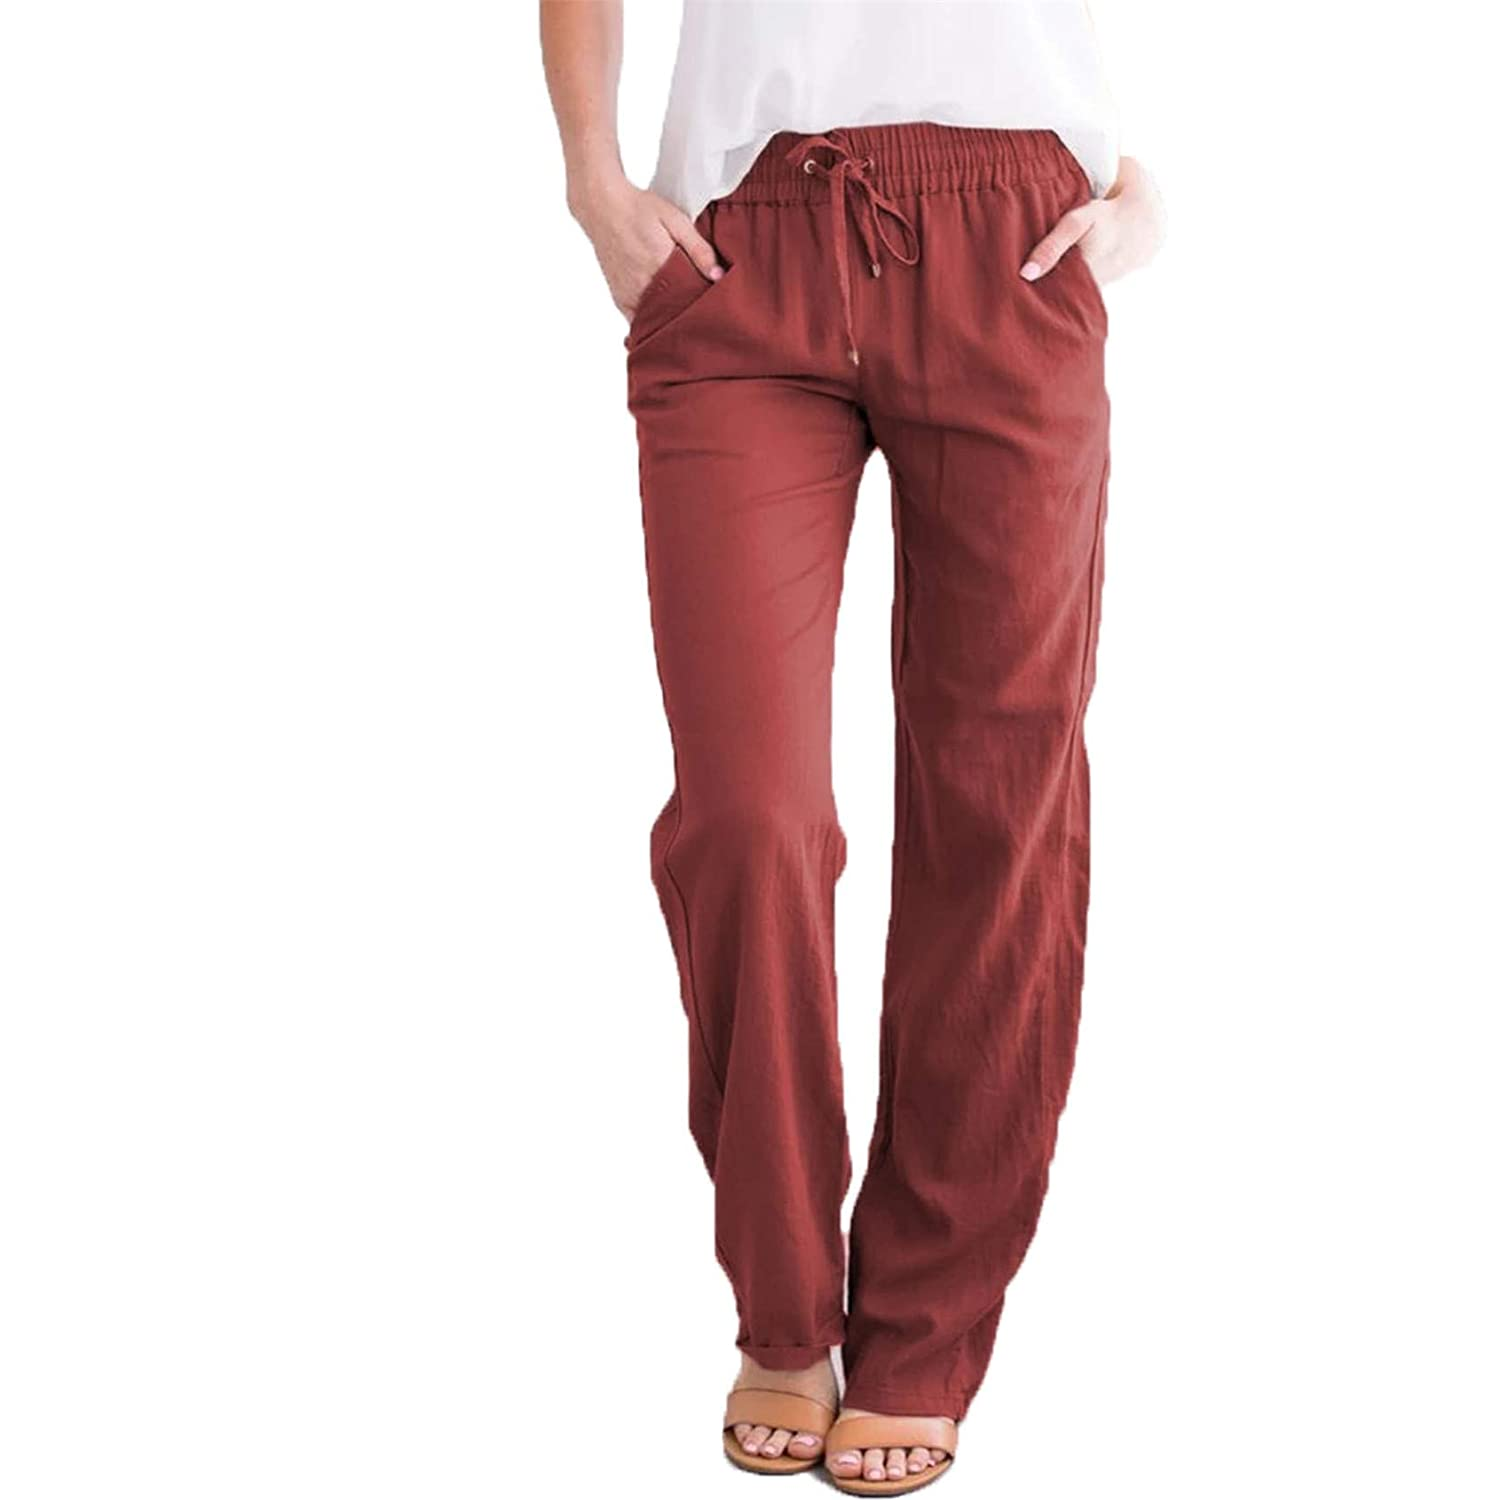 Women's Casual Linen Long Pants Cotton Wide Drawstring Pants with Pockets Elastic Waist Trousers (X-Large,Red wine)